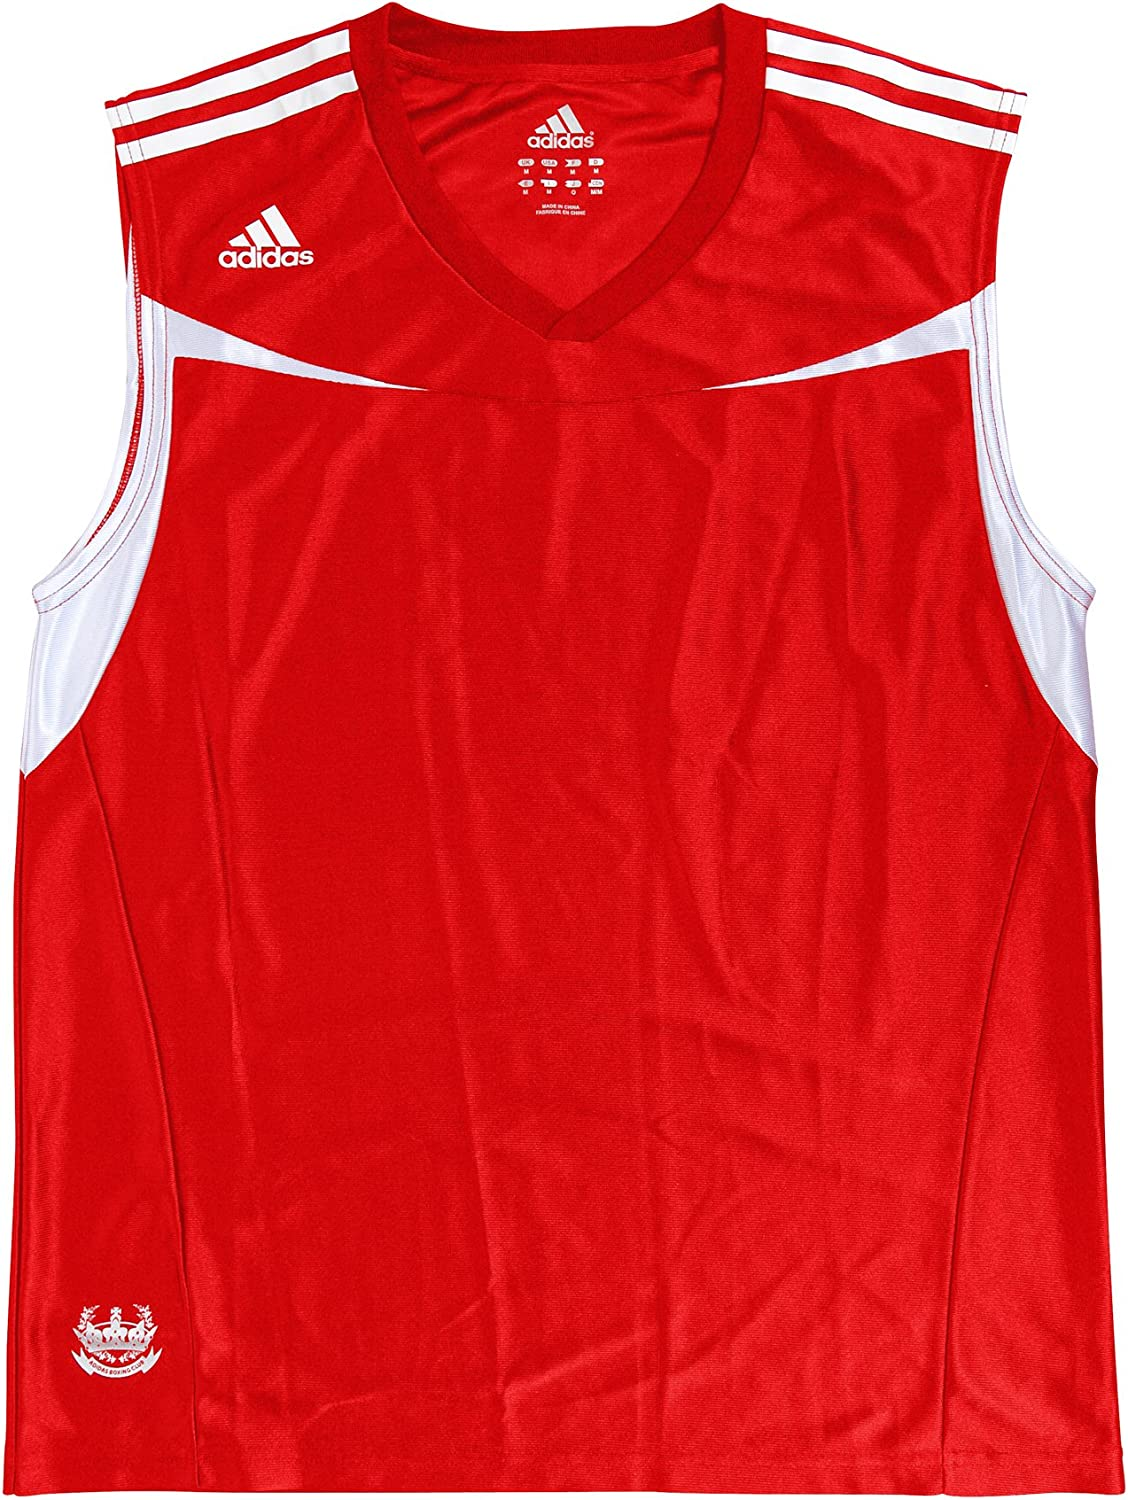 adidas Boxing Competition Performance Jersey